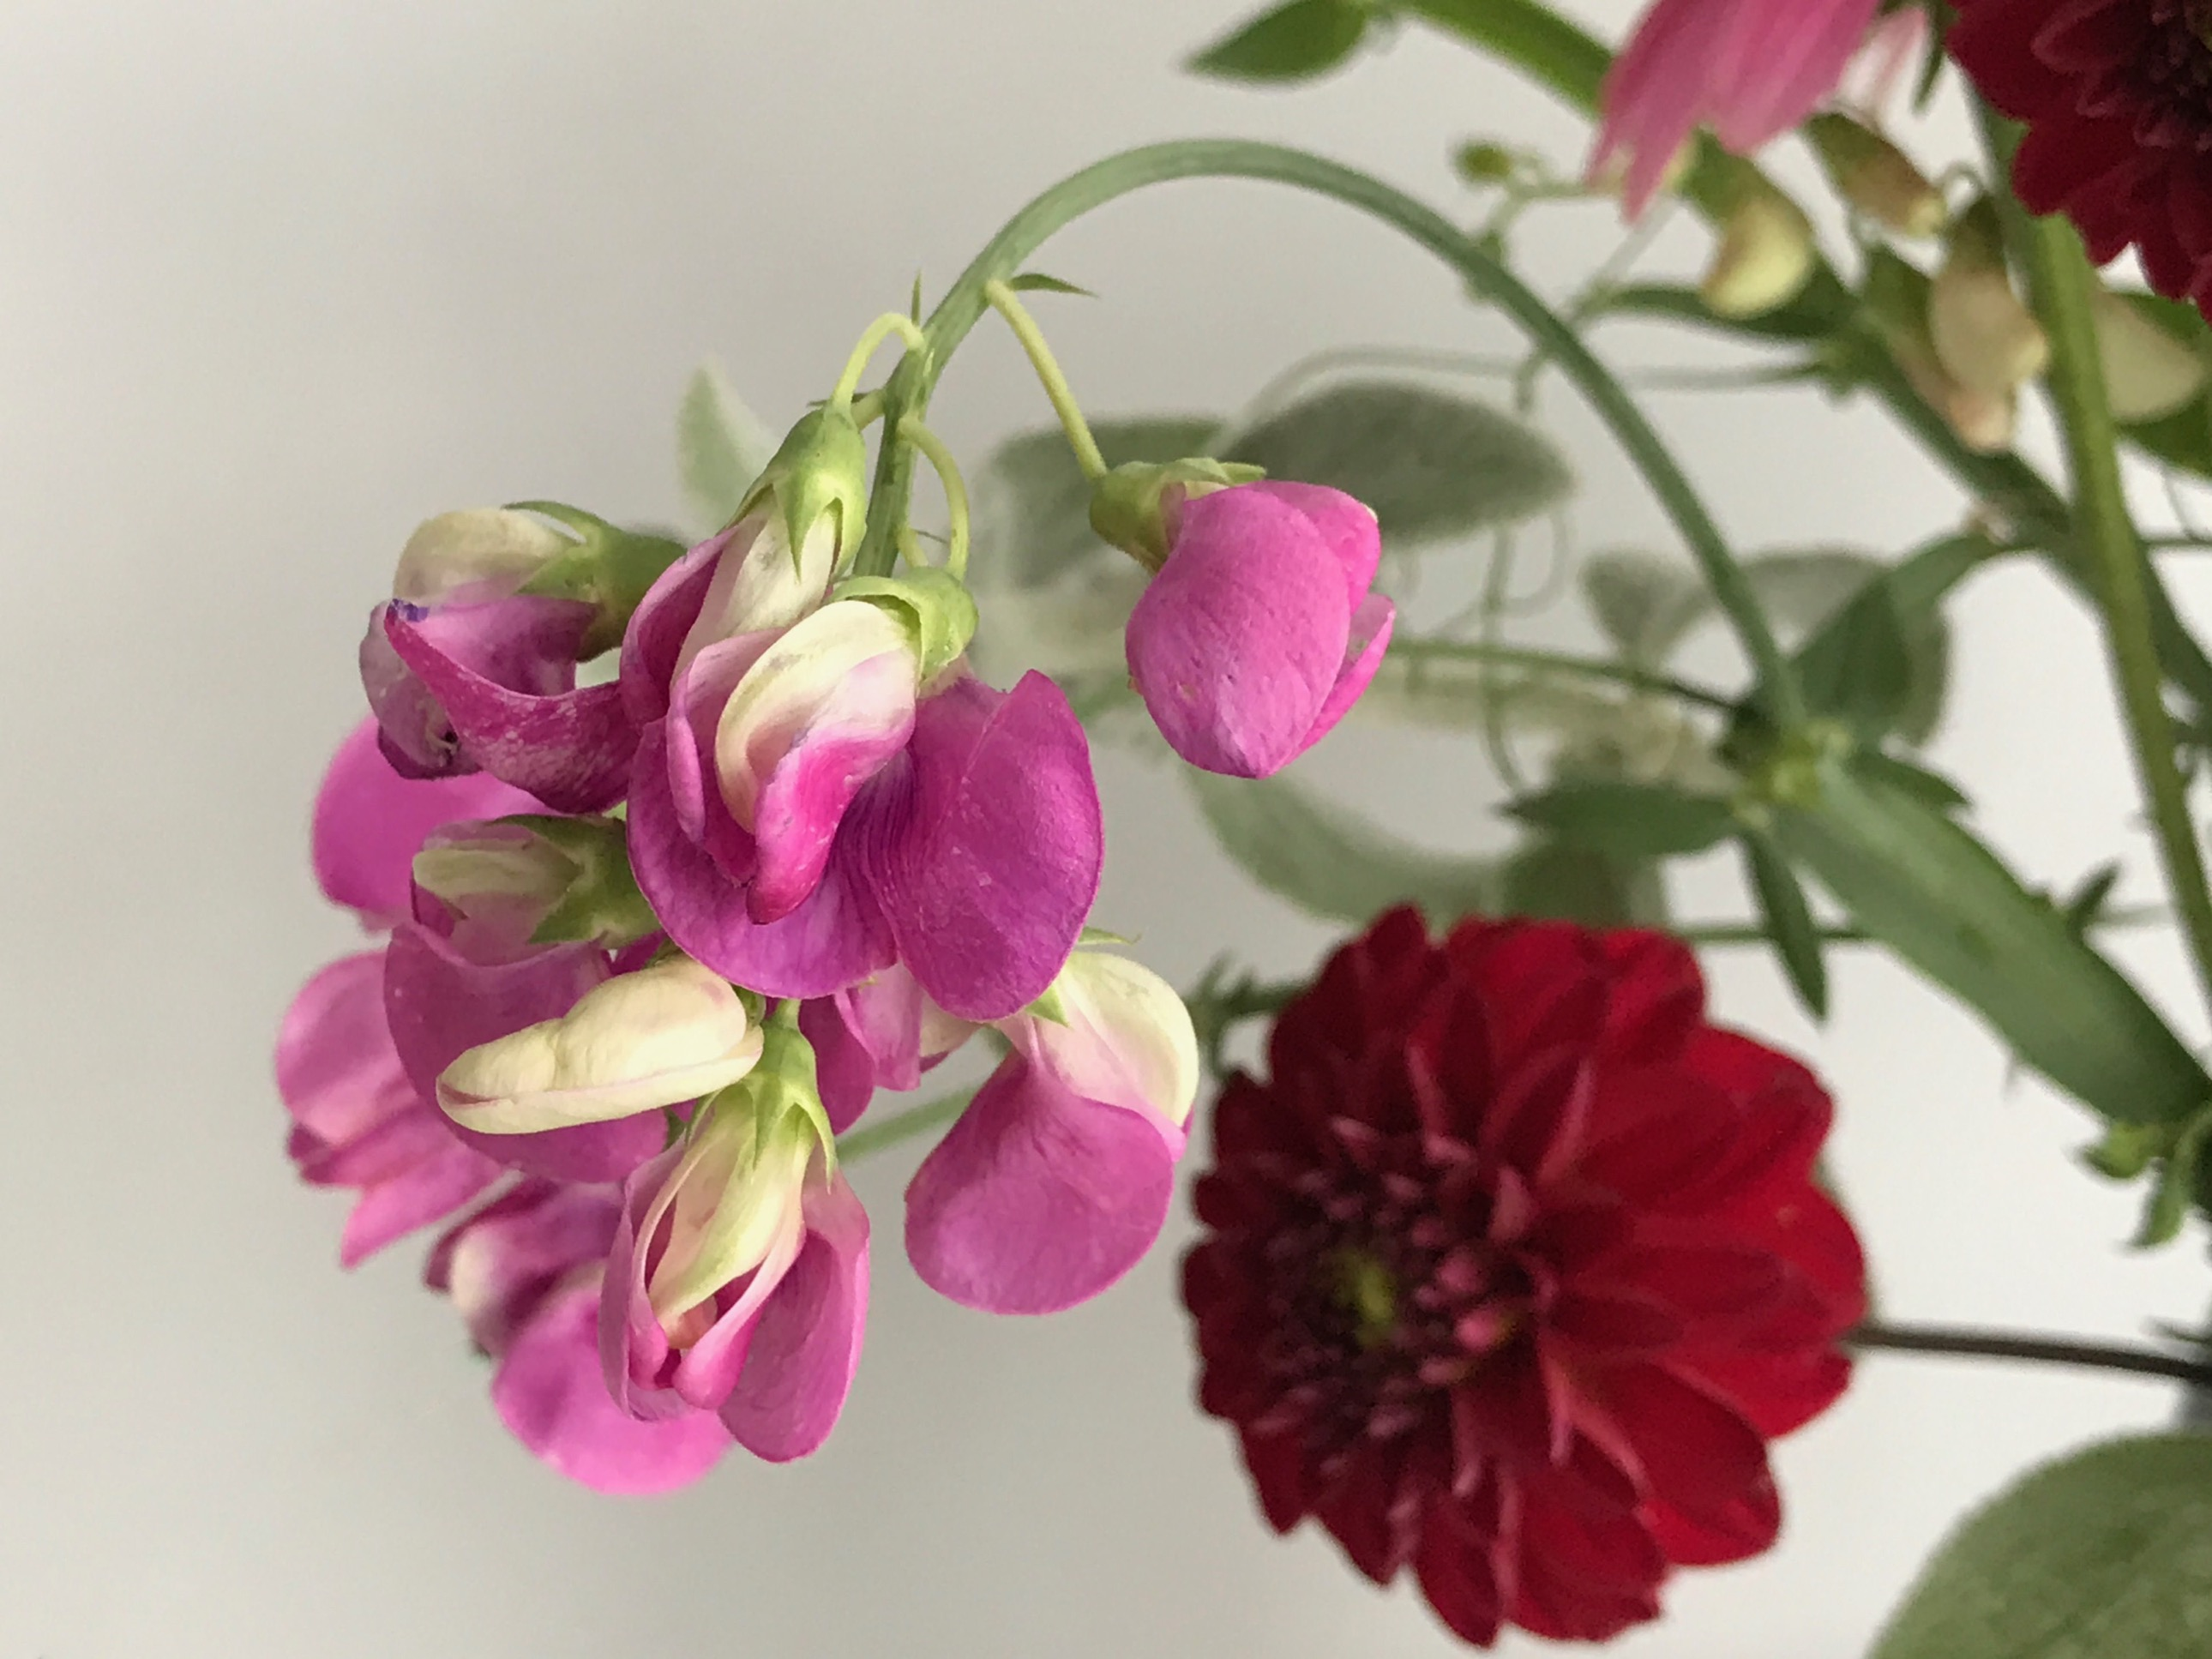 In a vase on monday summer bouquet pbmgarden lathyrus latifolius everlasting sweet pea reviewsmspy